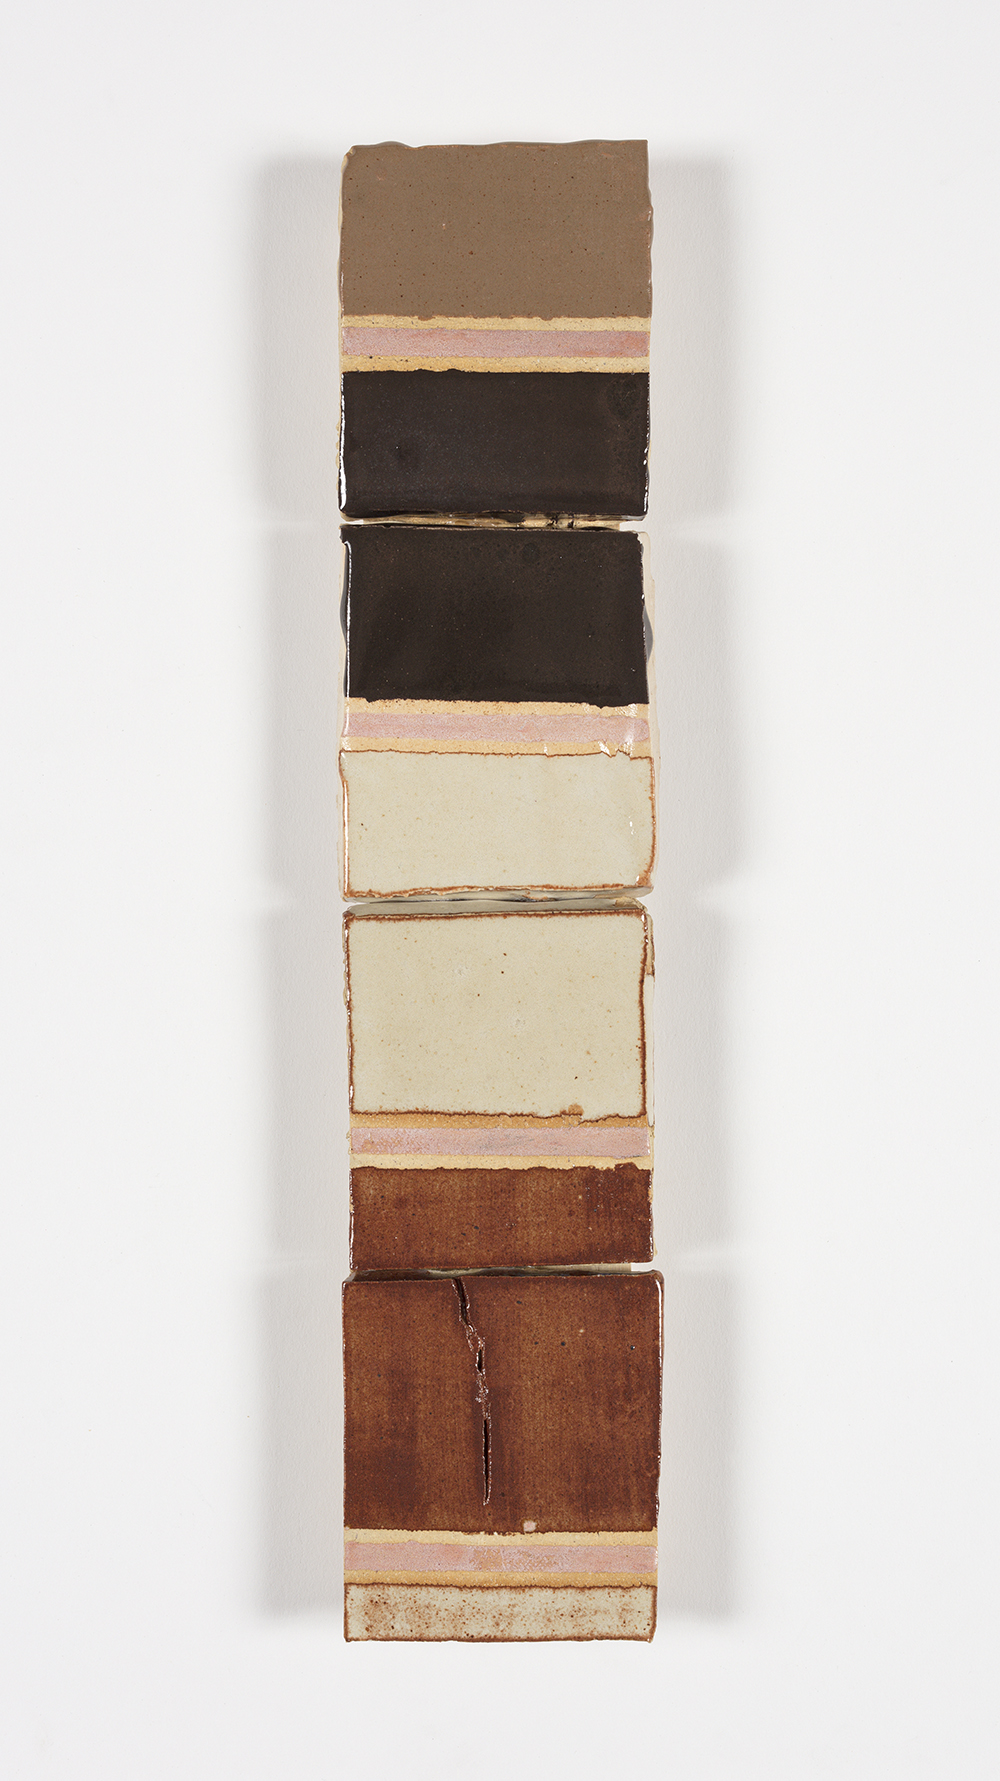 Kevin McNamee-Tweed.<em> Blinking</em>, 2019. Glazed ceramic, 13 x 2 3/4 inches (33 x 7 cm)